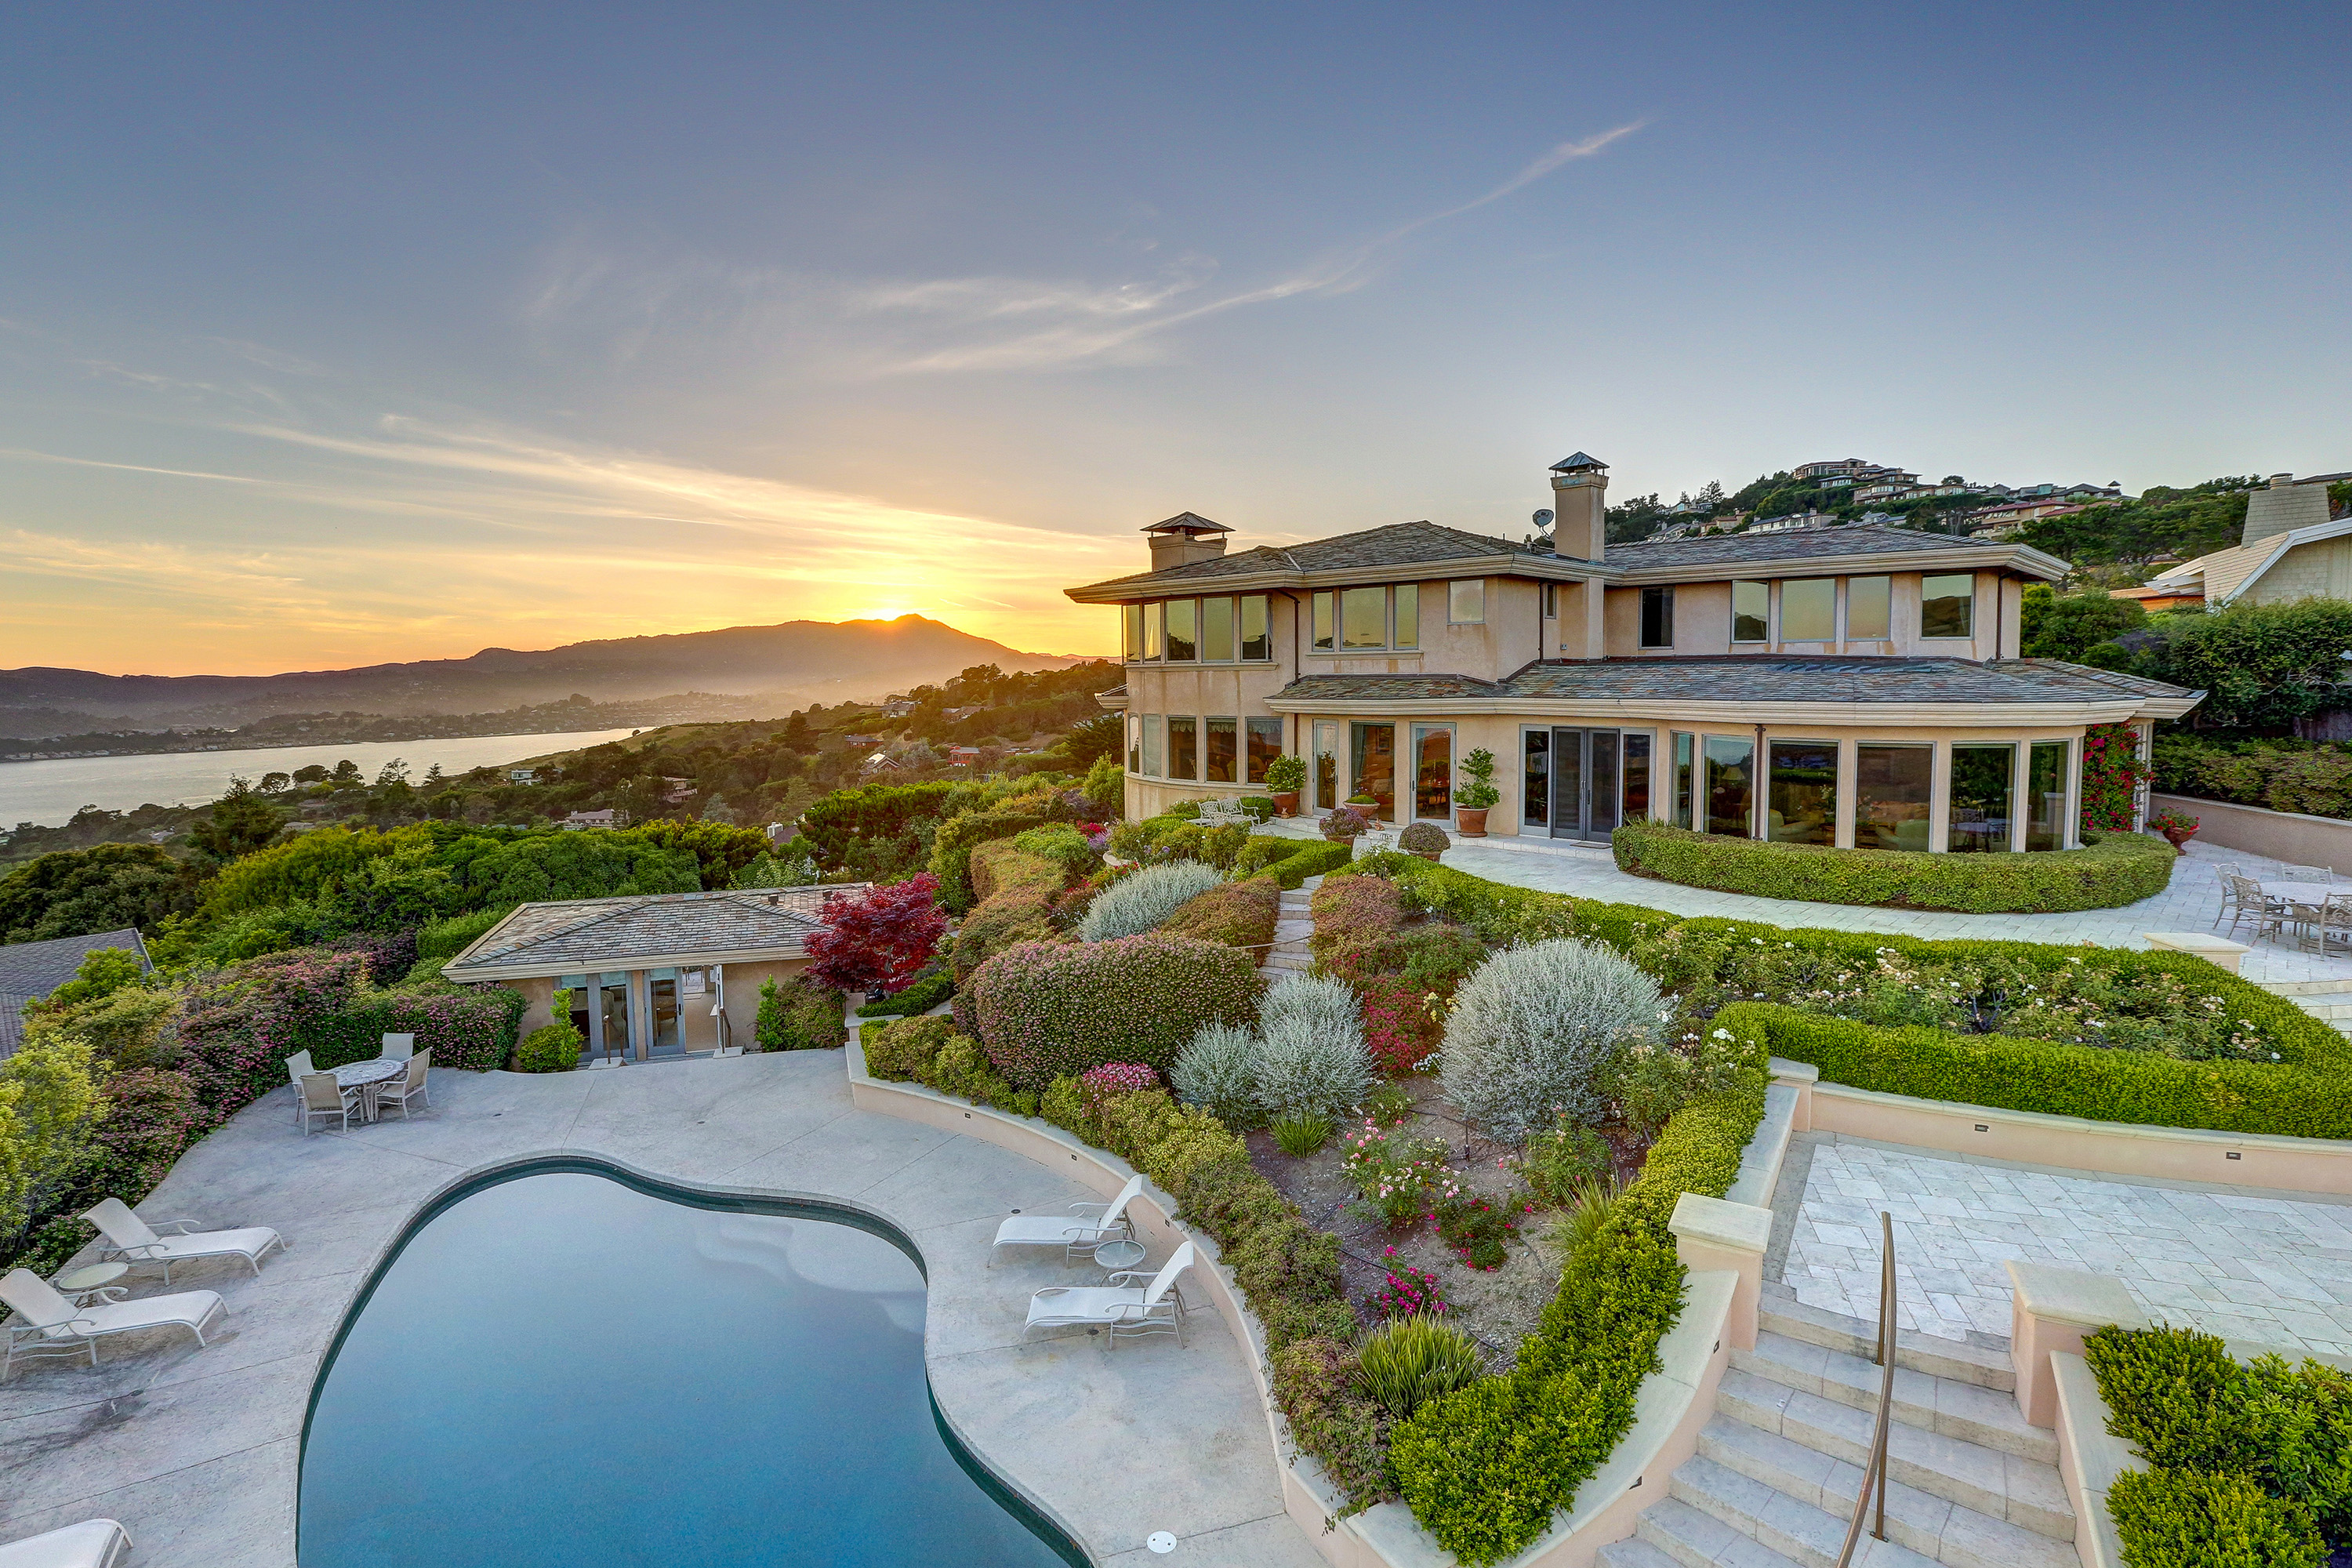 Casa Unifamiliar por un Venta en World Class Estate! 4 Santa Ana Ct Tiburon, California, 94920 Estados Unidos